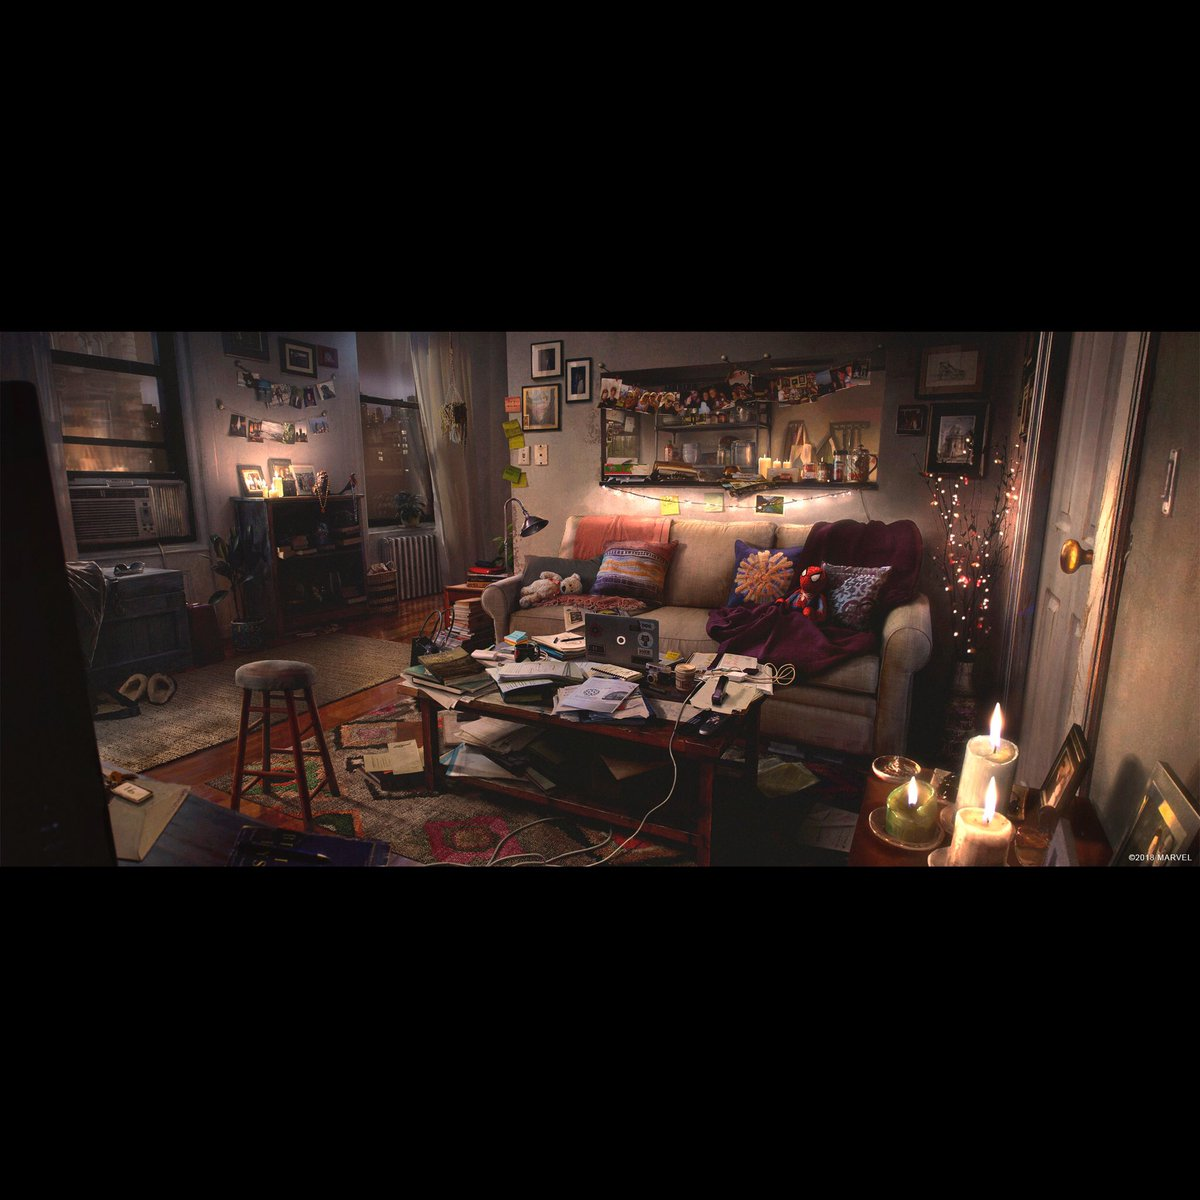 Dennis Chan On Twitter Mj S Apartment Concept For Spider Man Ps4 Art Direction By Jacinda Chew Spiderman Spidermanps4 Insomniac Marvel